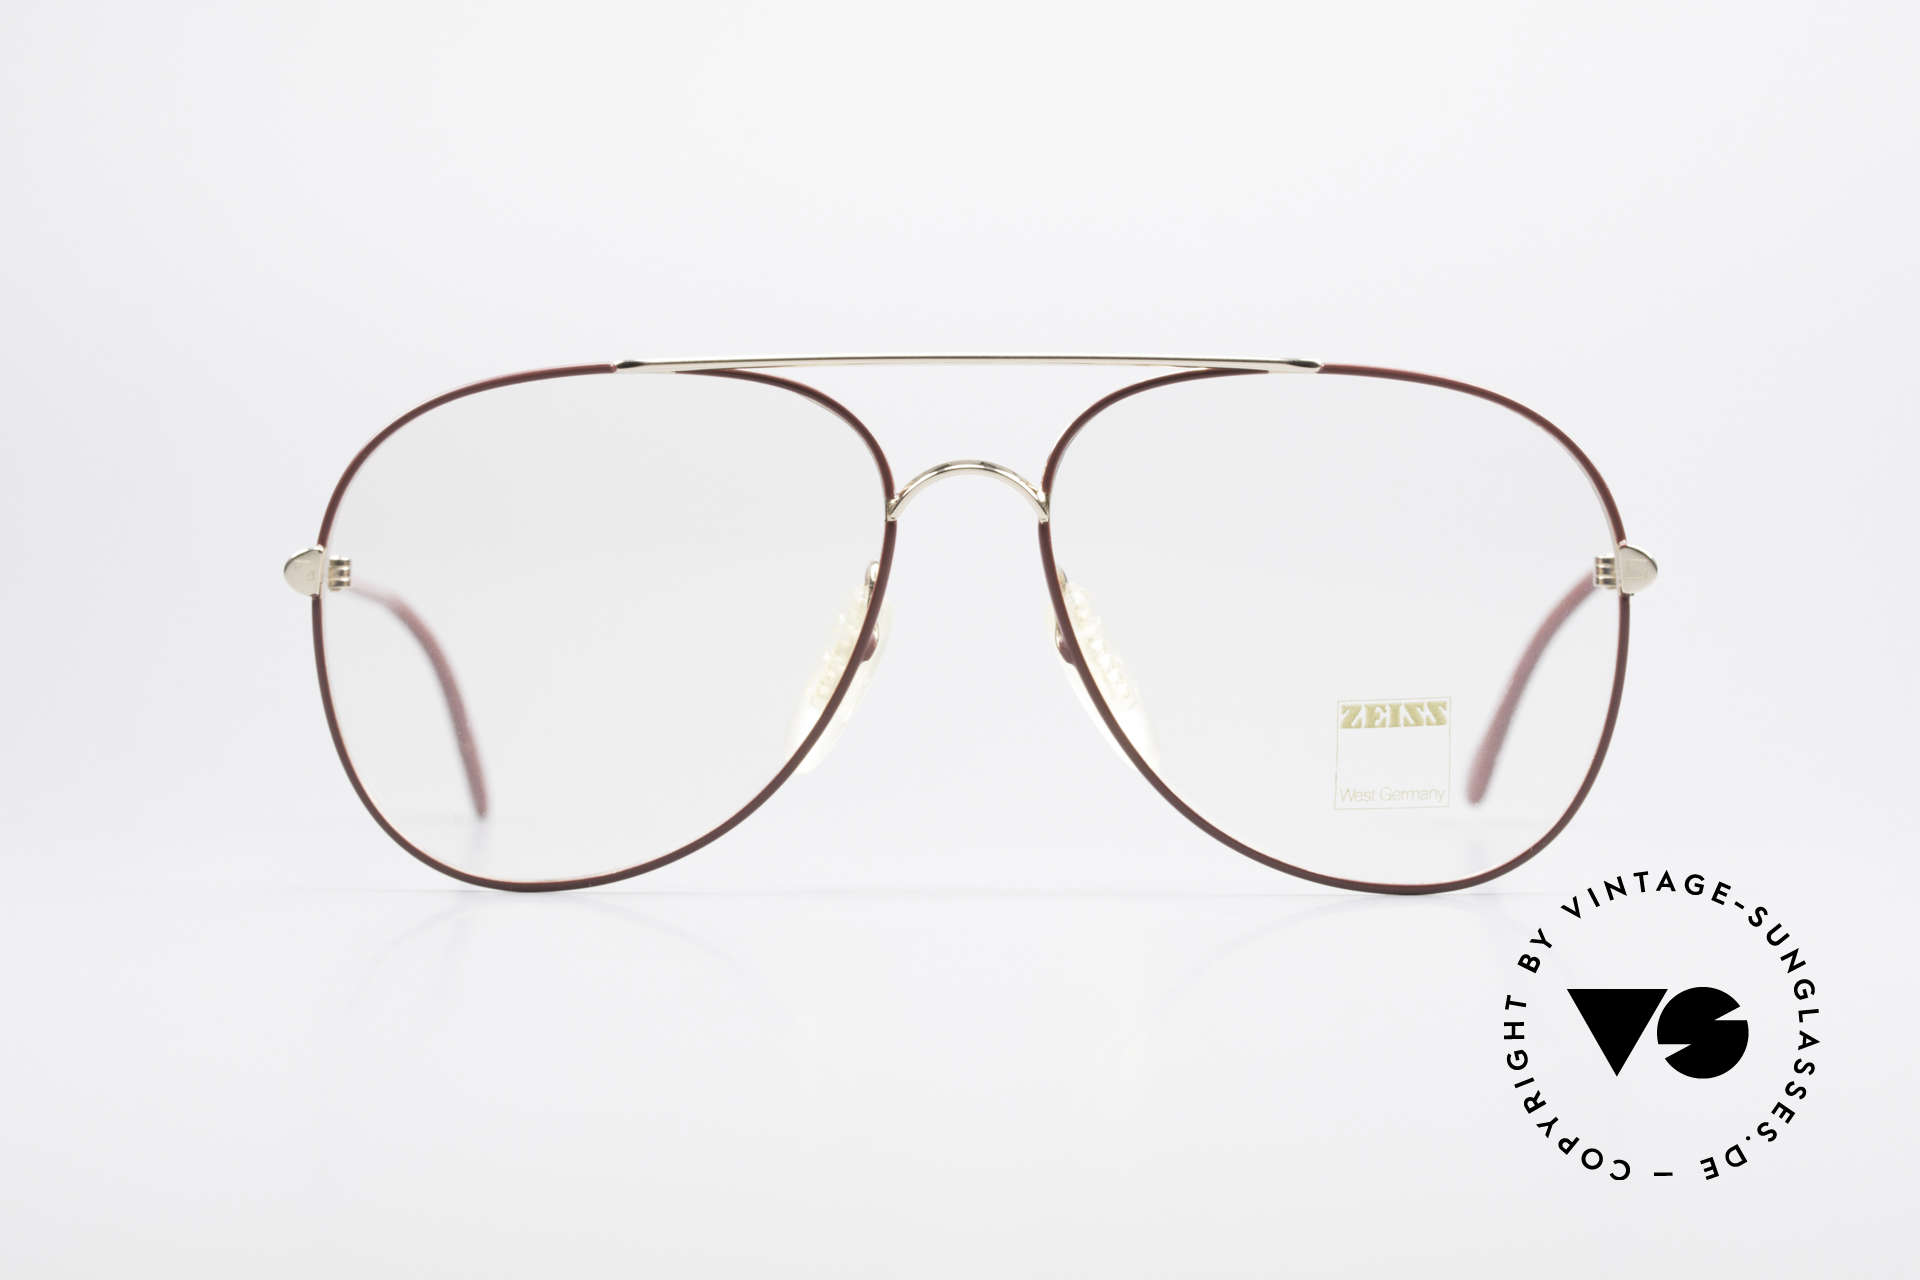 Zeiss 5882 Old 80's Eyeglass-Frame Men, outstanding 'MADE IN W. GERMANY' craftsmanship, Made for Men